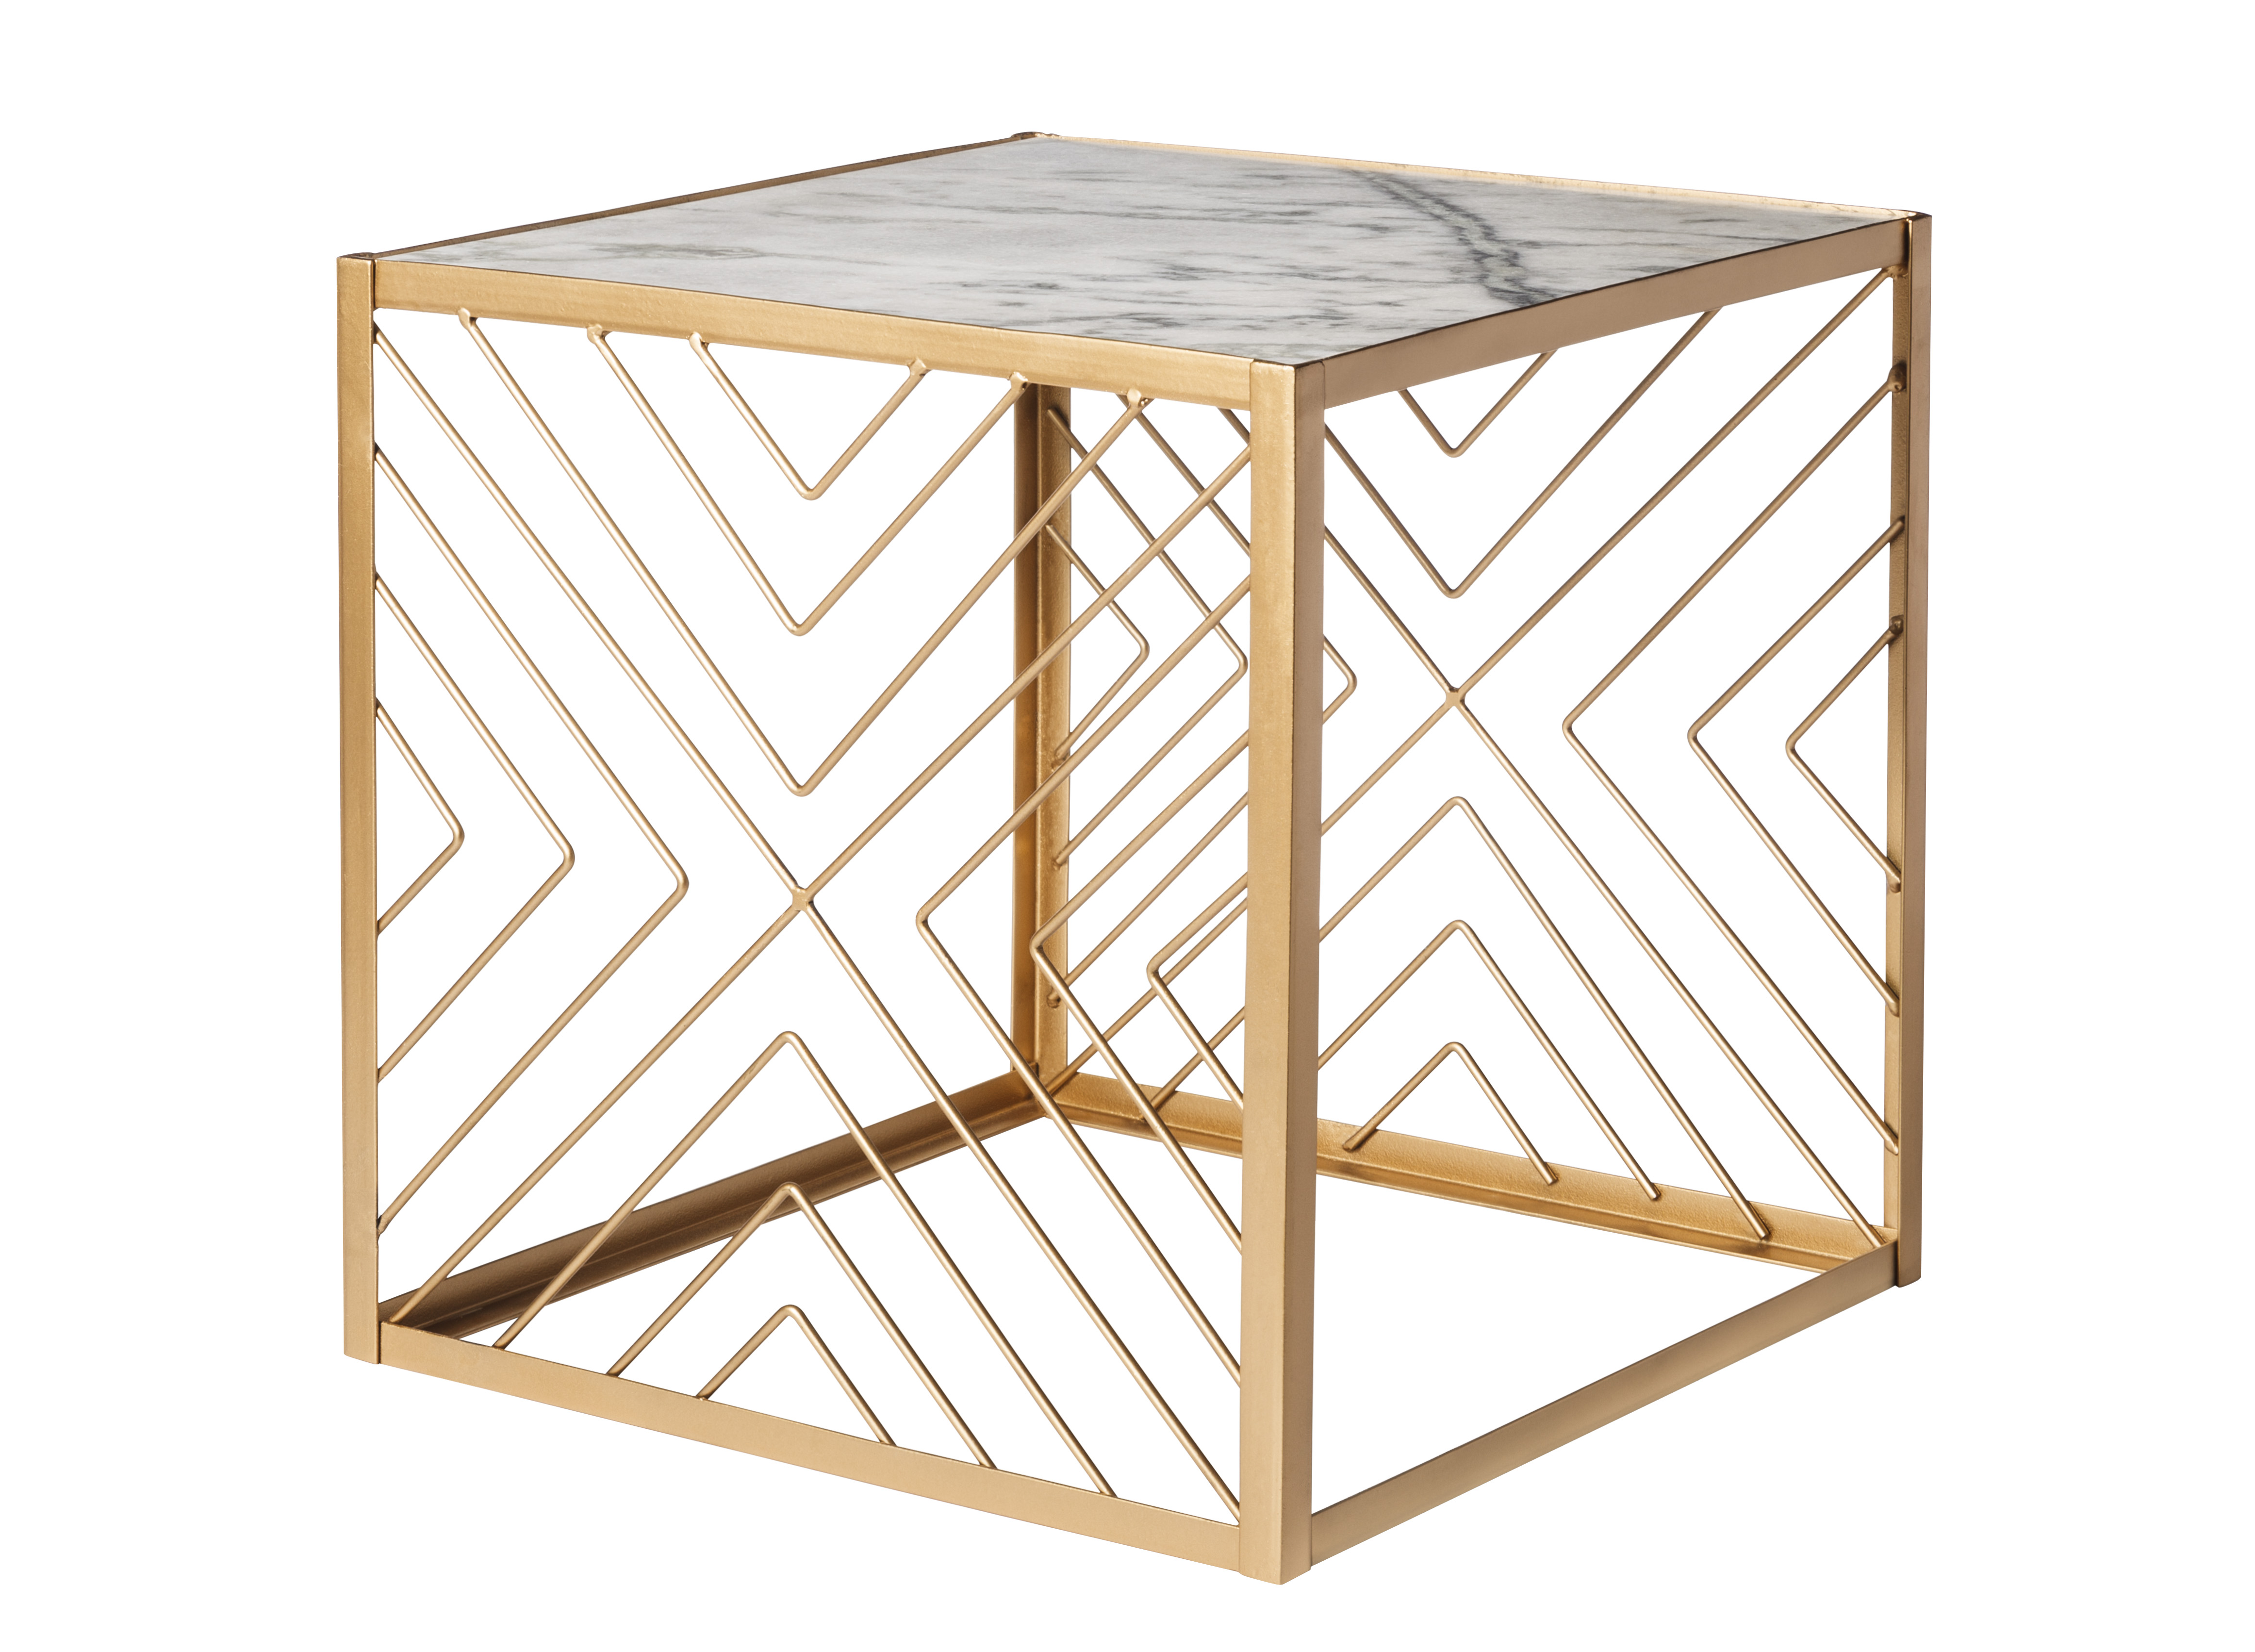 nate berkus target fall holiday look marble top accent table garden drinks cooler farm with bench oak glass coffee wrought iron dining drawers room essentials storage farmhouse